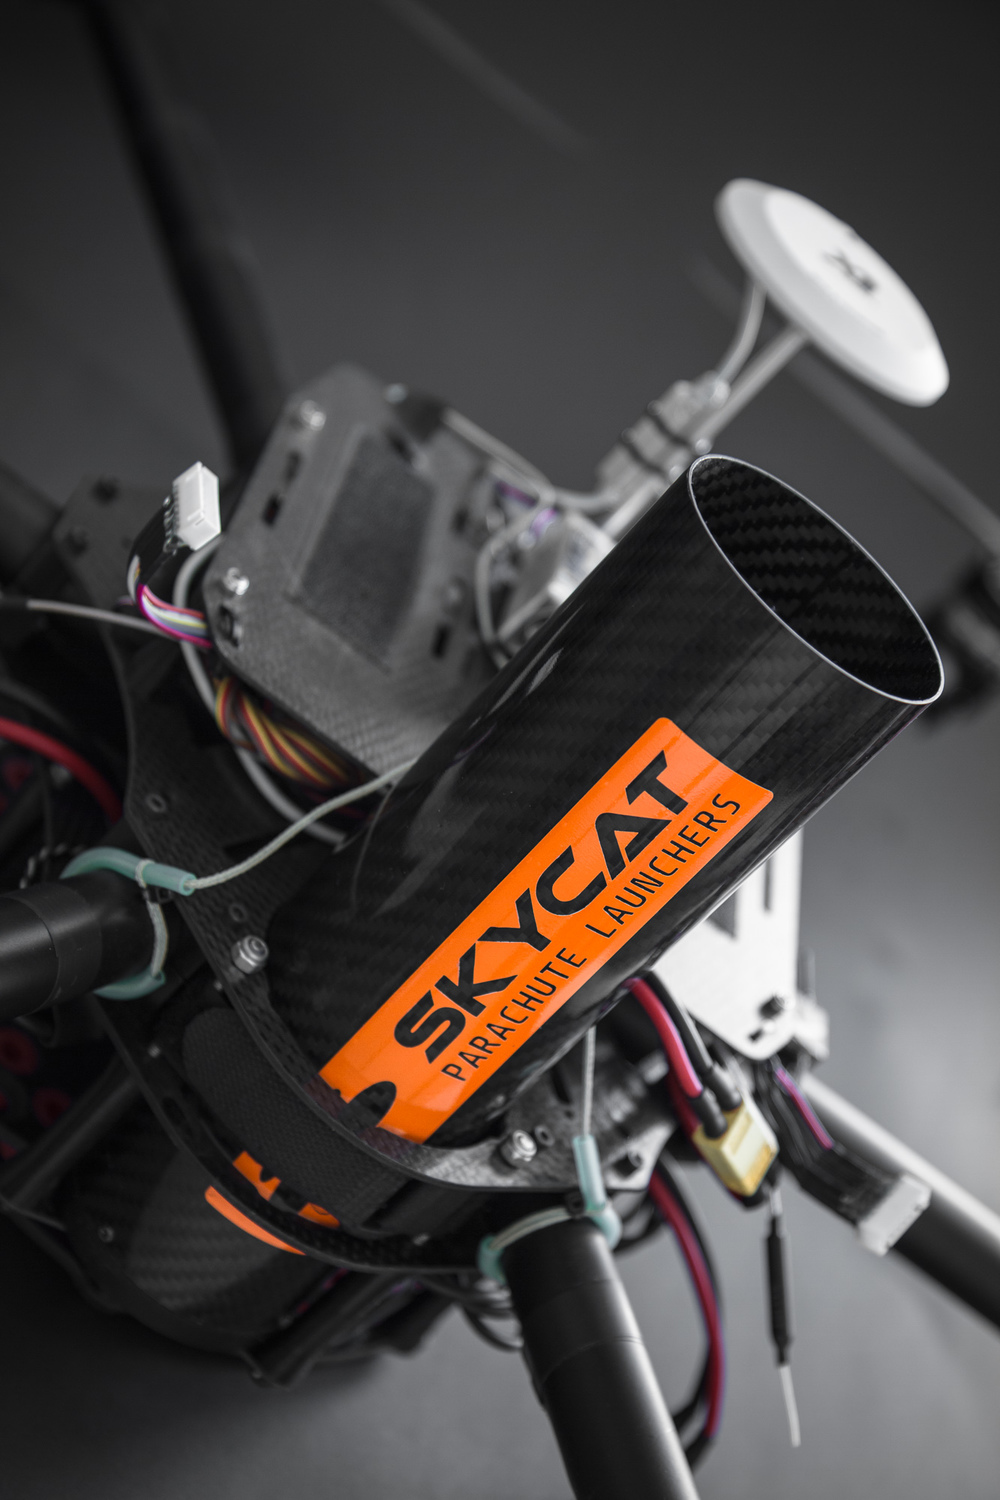 Skycat X68-CF launcher integrated into a hexacopter airframe. Customer project.